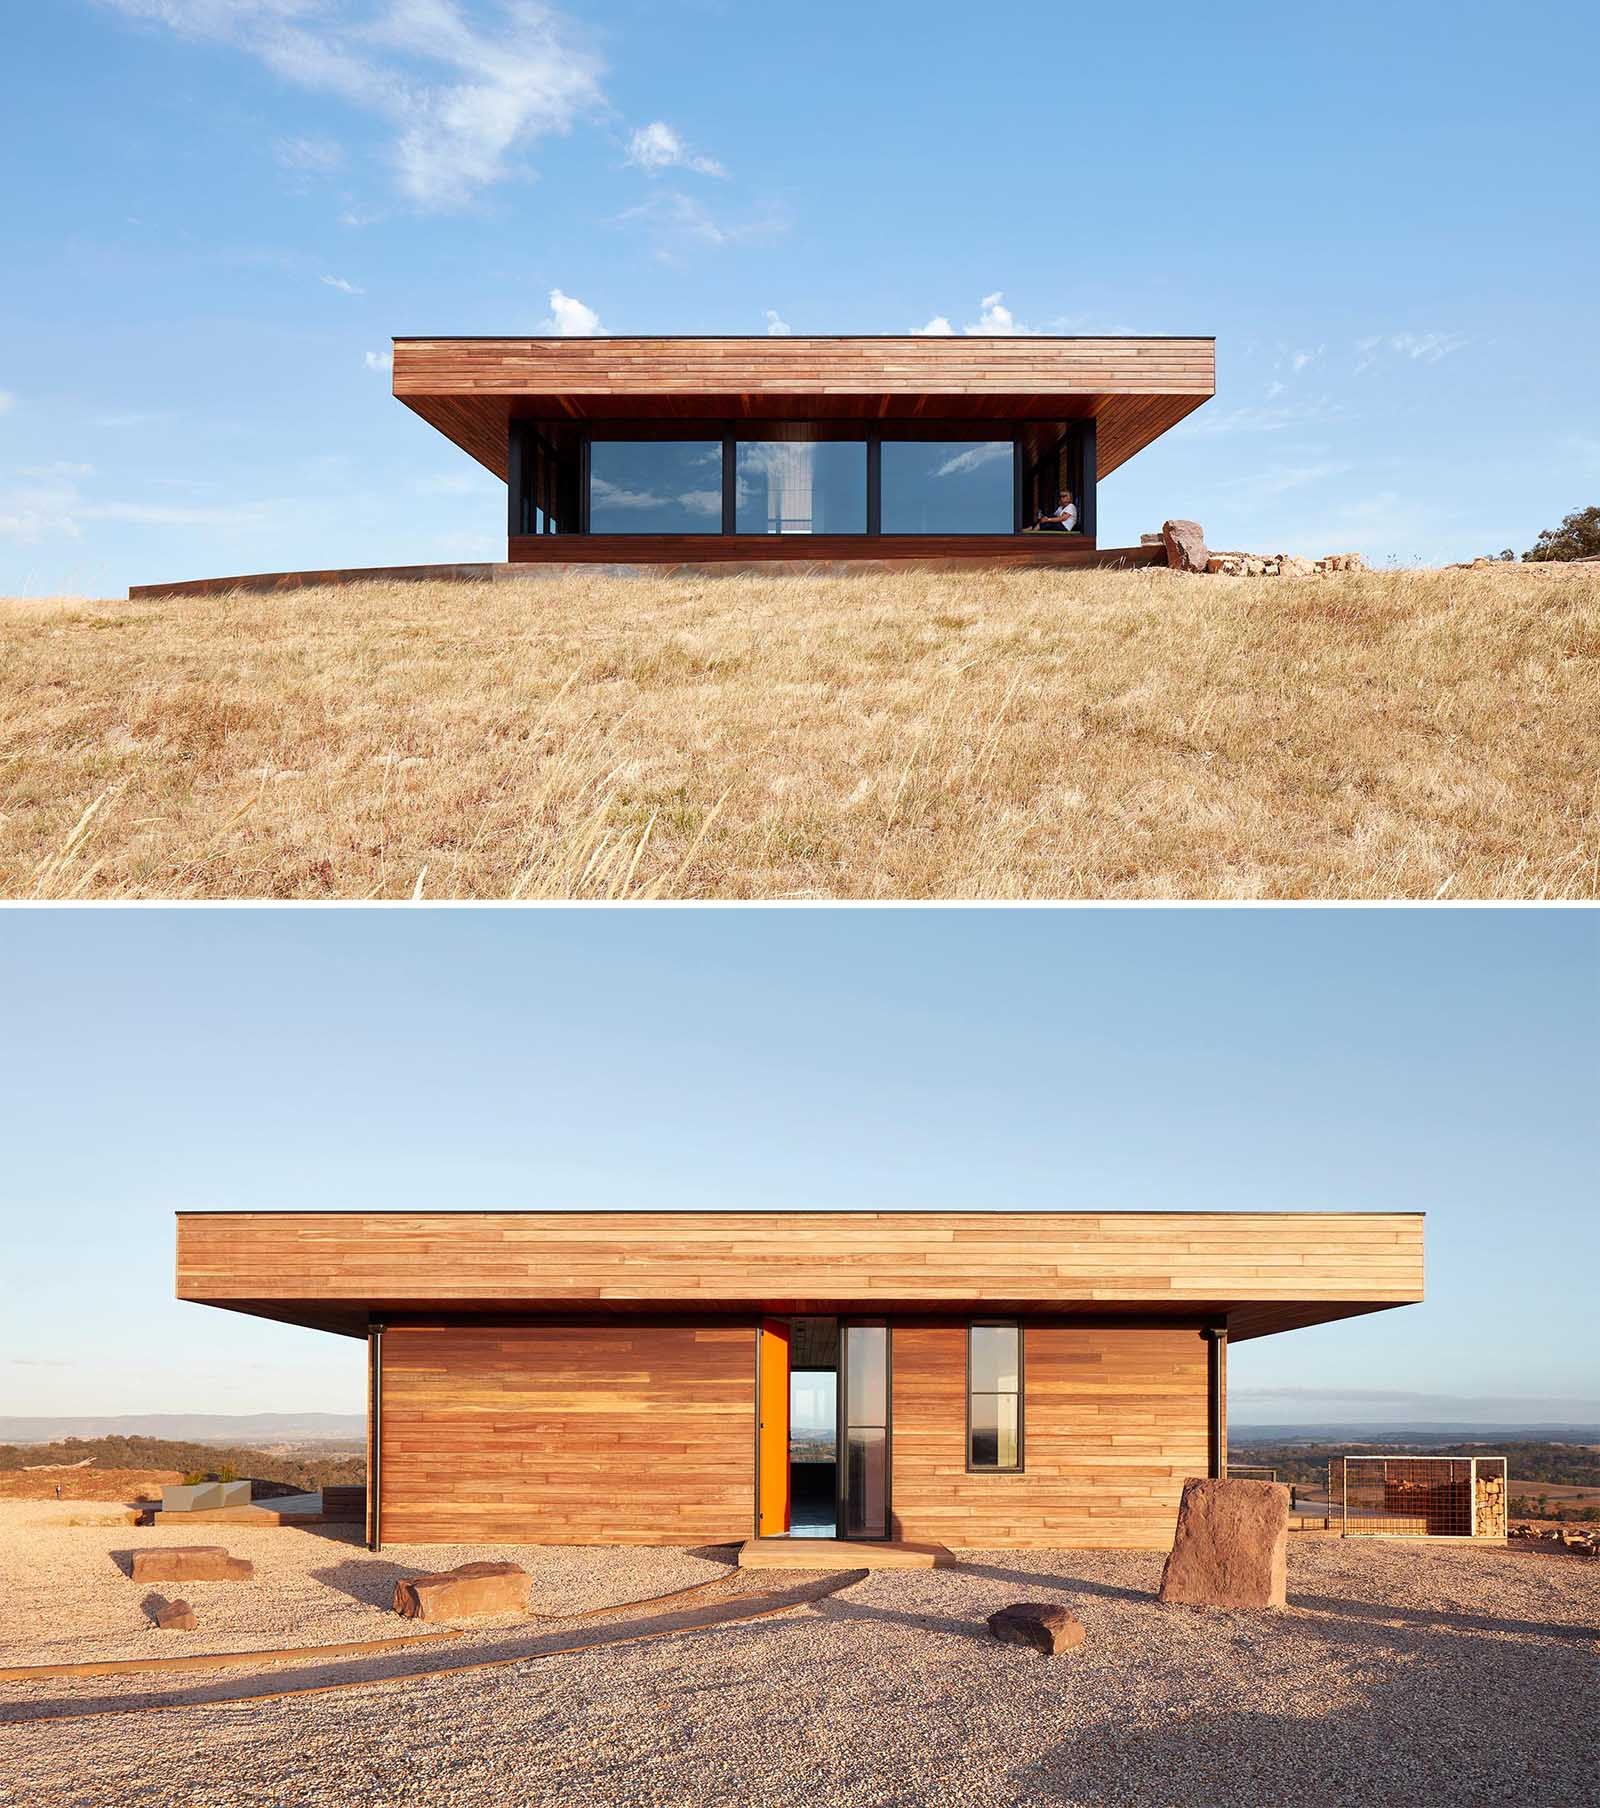 The entire exterior of this small home is clad in Spotted Gum timber, an Australian native hardwood that's so durable that it meets the bushfire rating non-combustibility requirements.